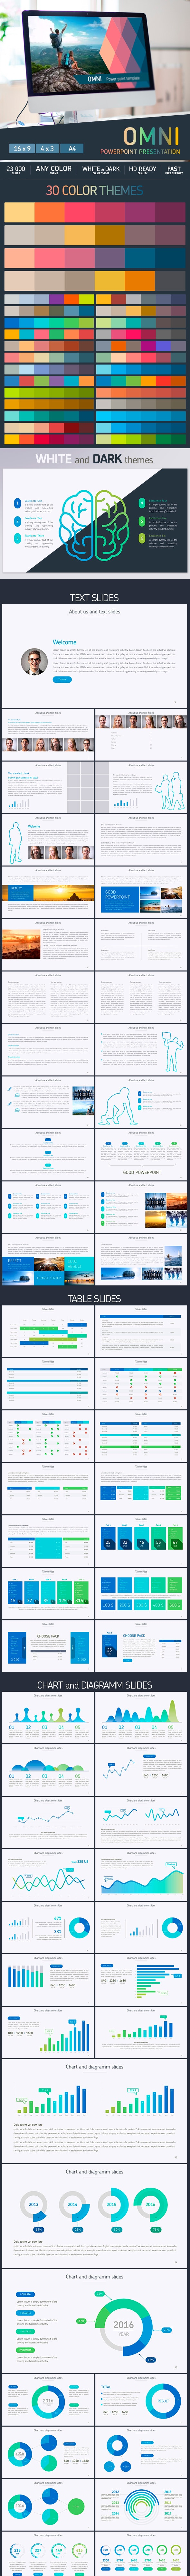 Omni - Powerpoint presentation - Business PowerPoint Templates